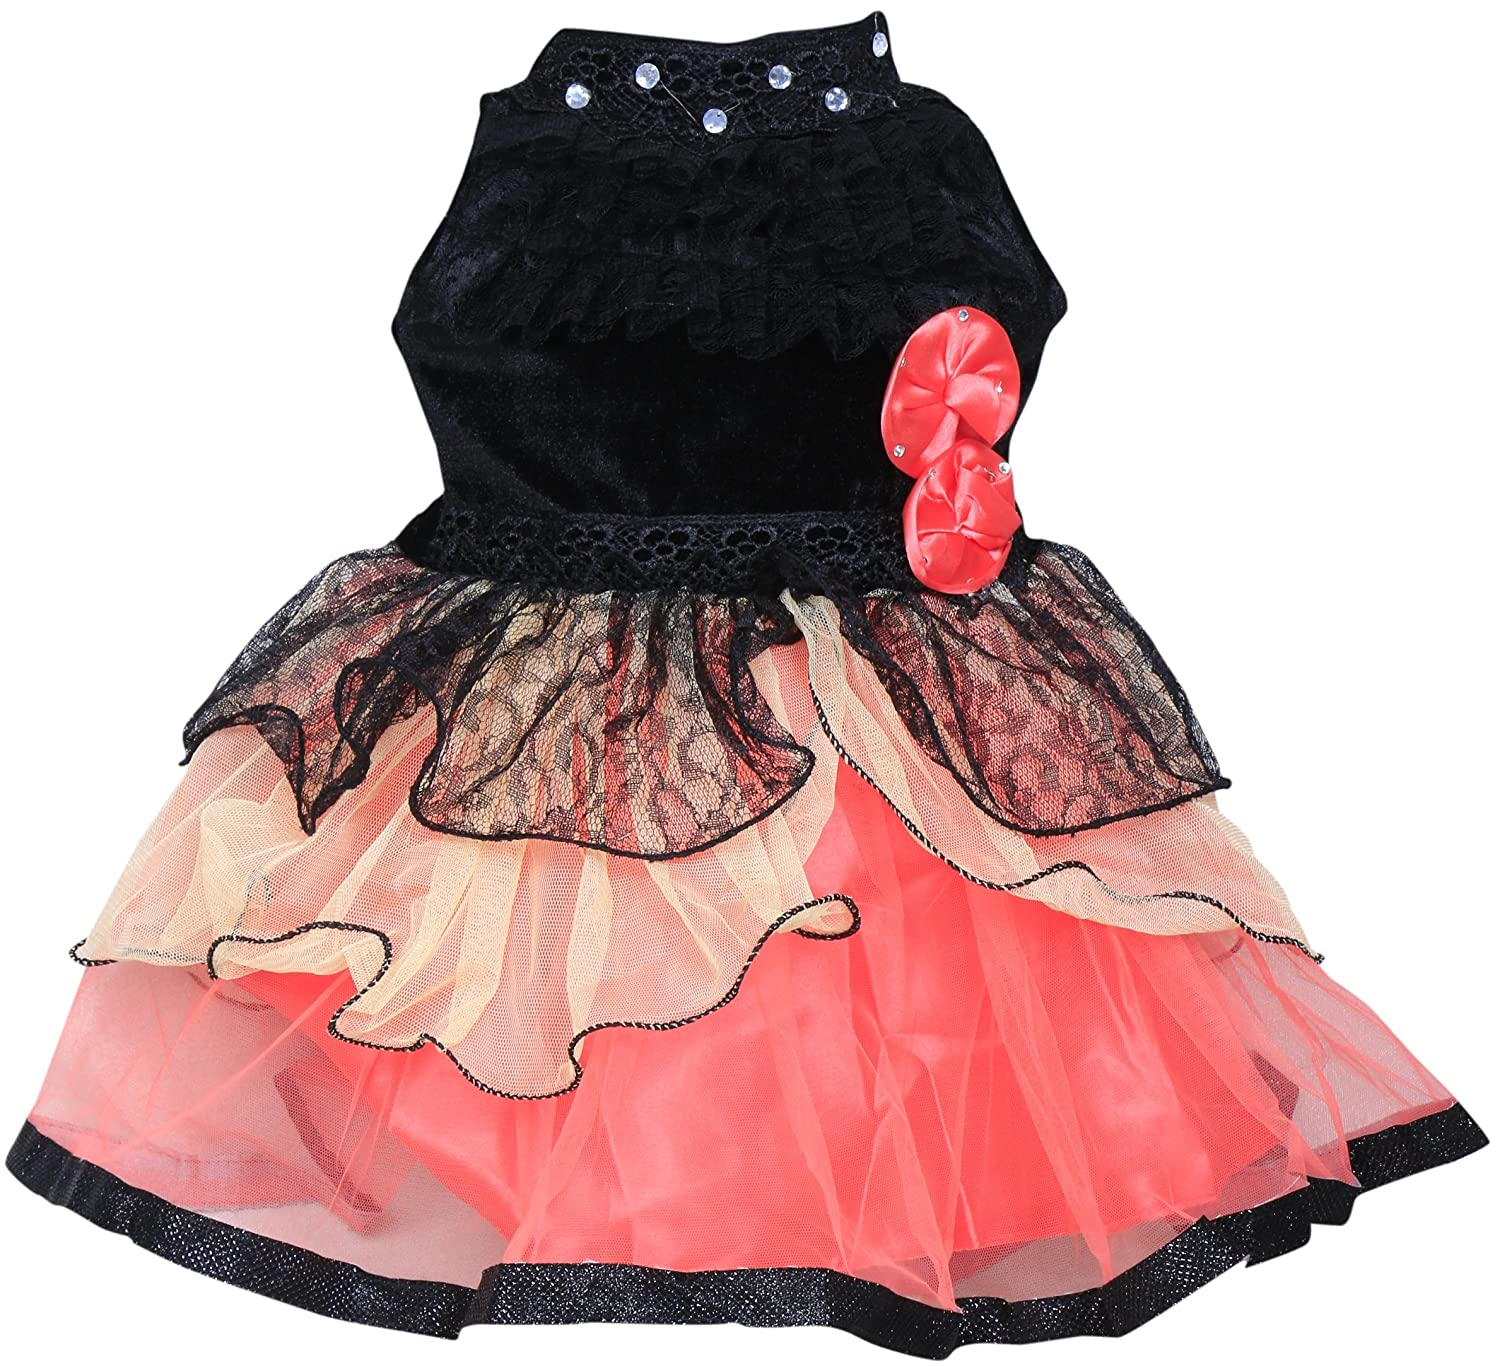 Mpc Cute Fashion Baby Girl s Velvet and Net Frock Dress for Amazon